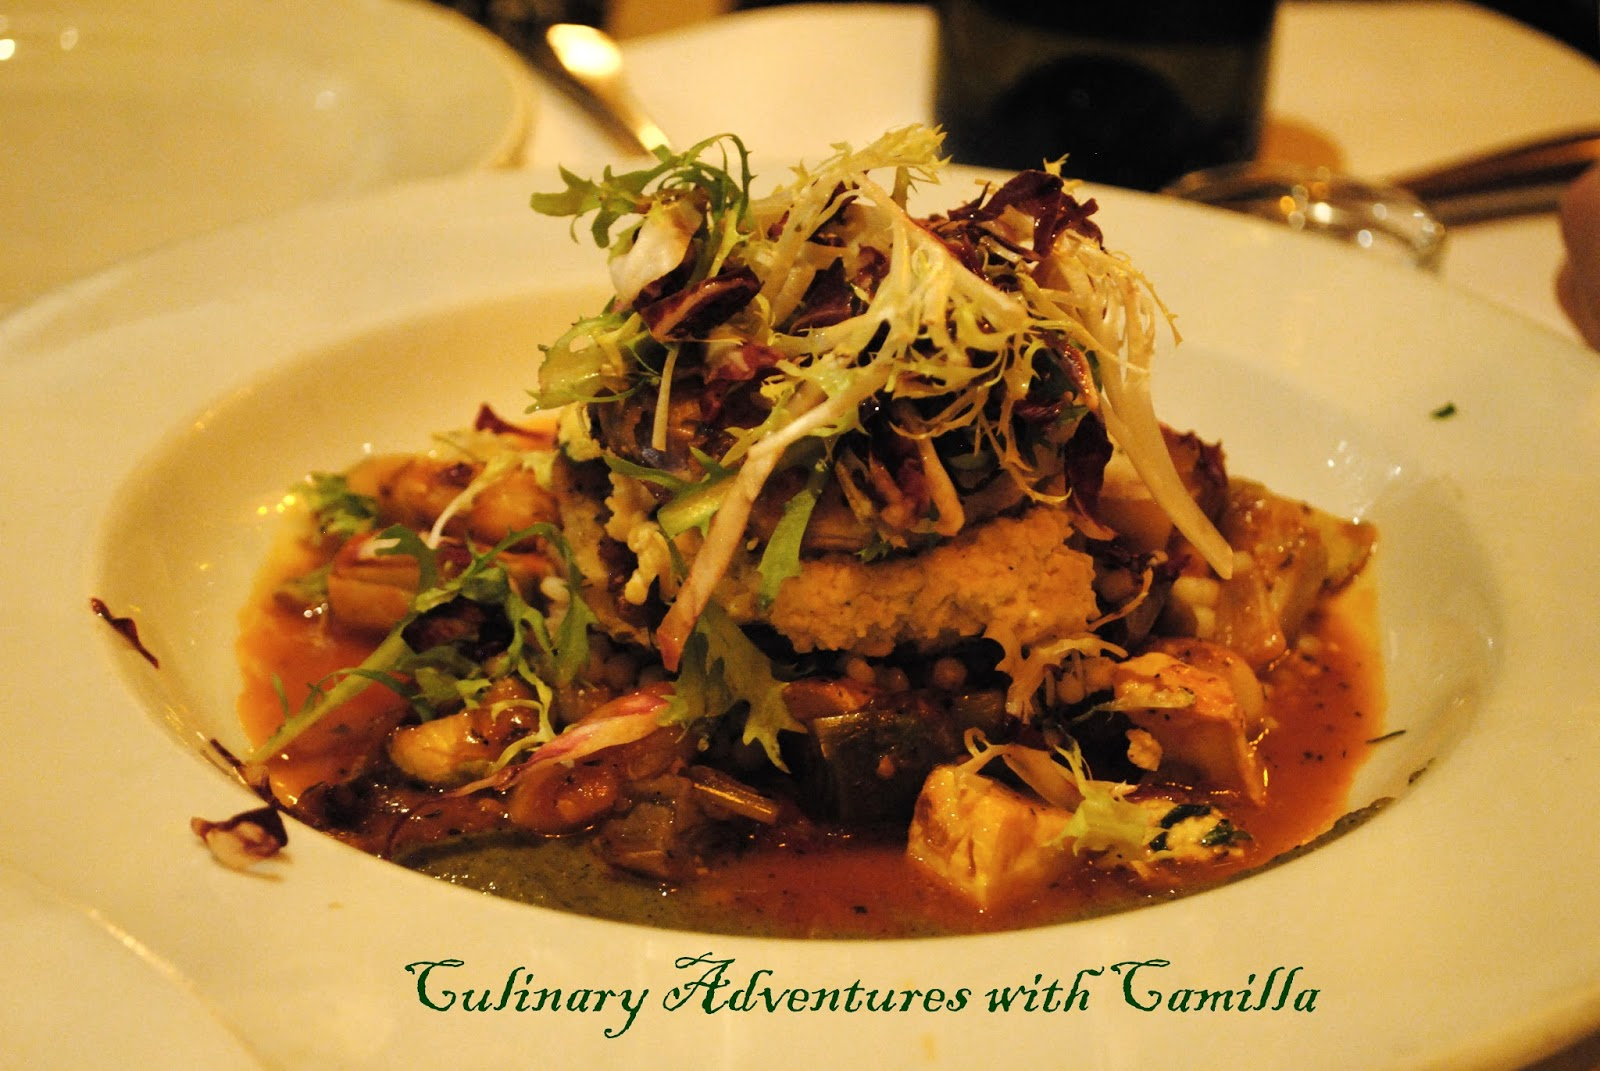 Culinary Adventures with Camilla: Millennium Restaurant & Some New ...